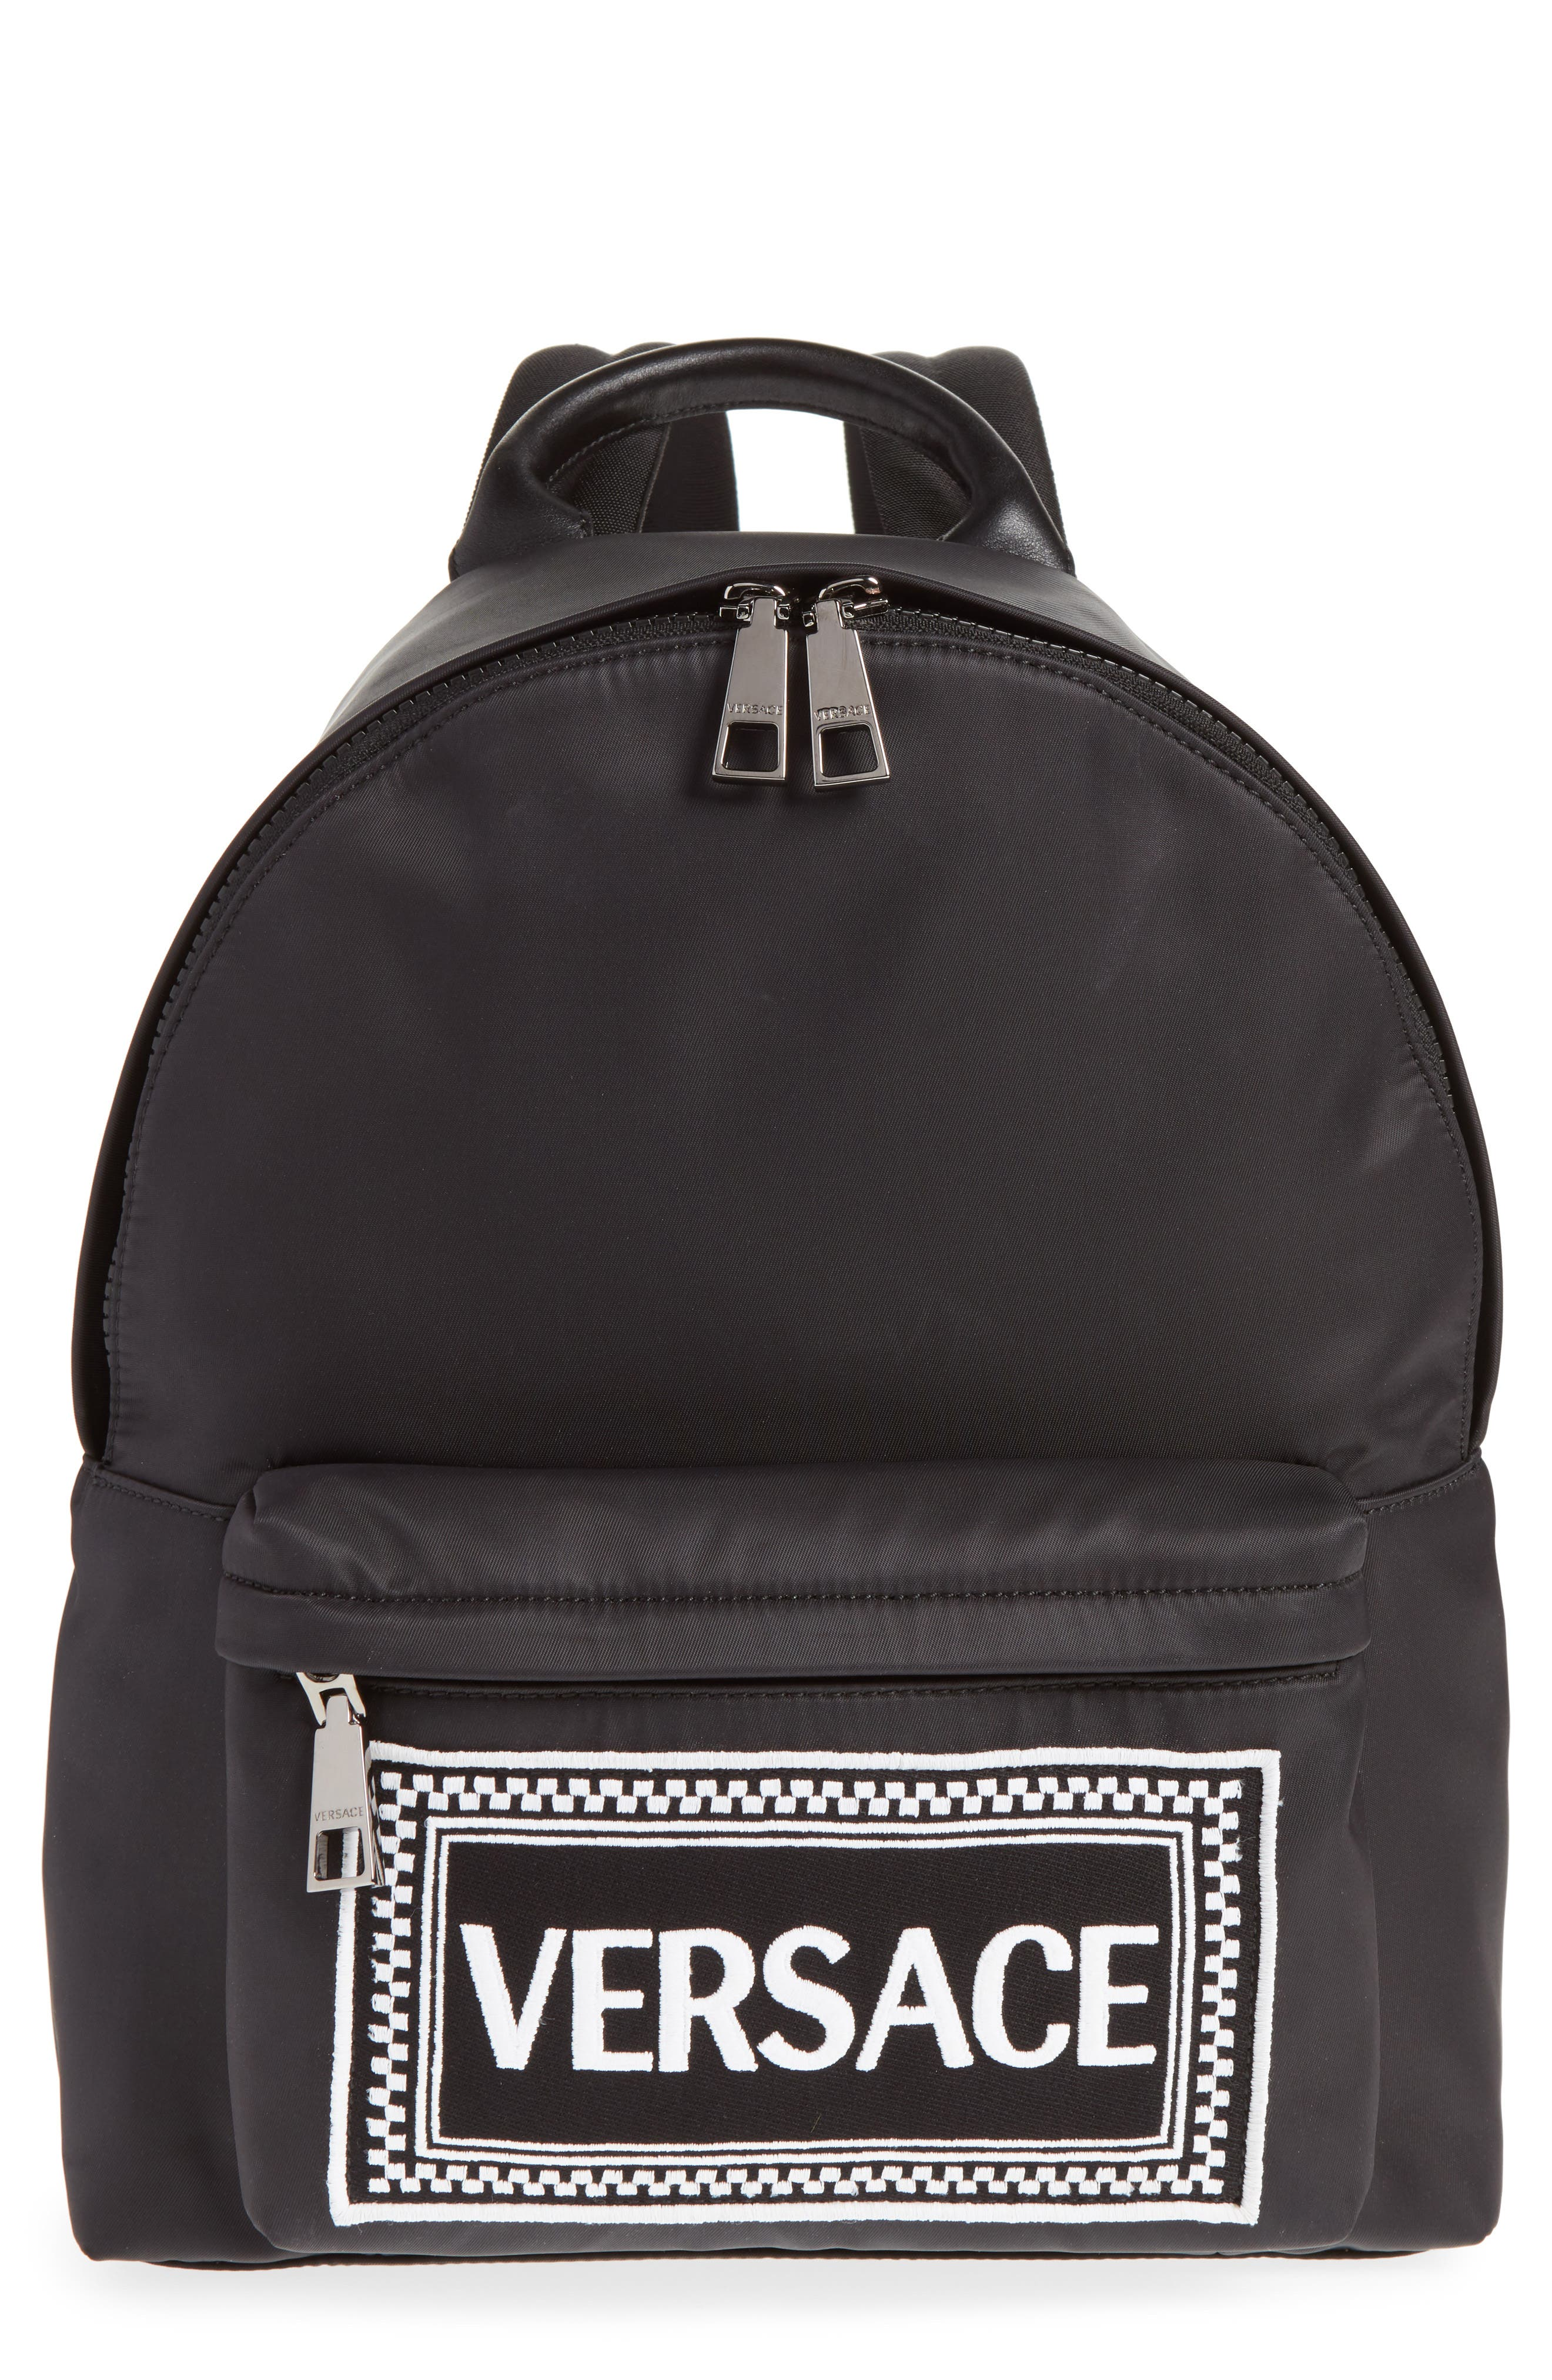 VERSACE,                             Logo Graphic Leather Backpack,                             Main thumbnail 1, color,                             YSNNC BLACK